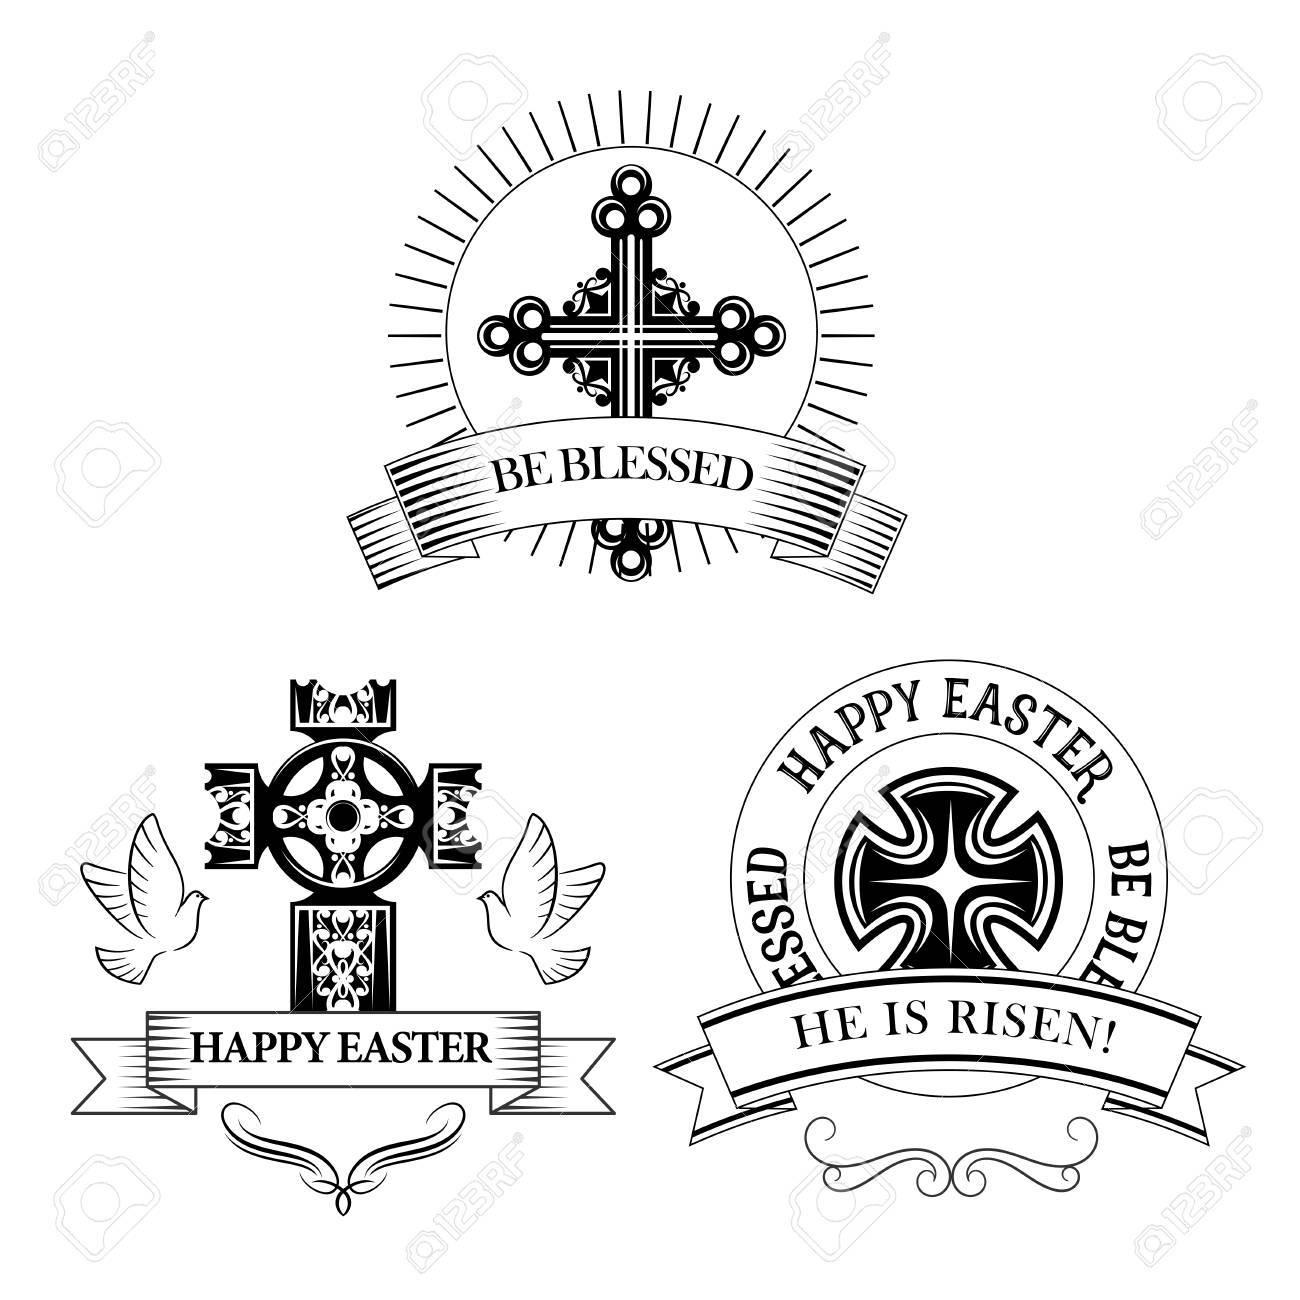 Easter symbols of cross and paschal text he is risen be blessed easter symbols of cross and paschal text he is risen be blessed for resurrection sunday biocorpaavc